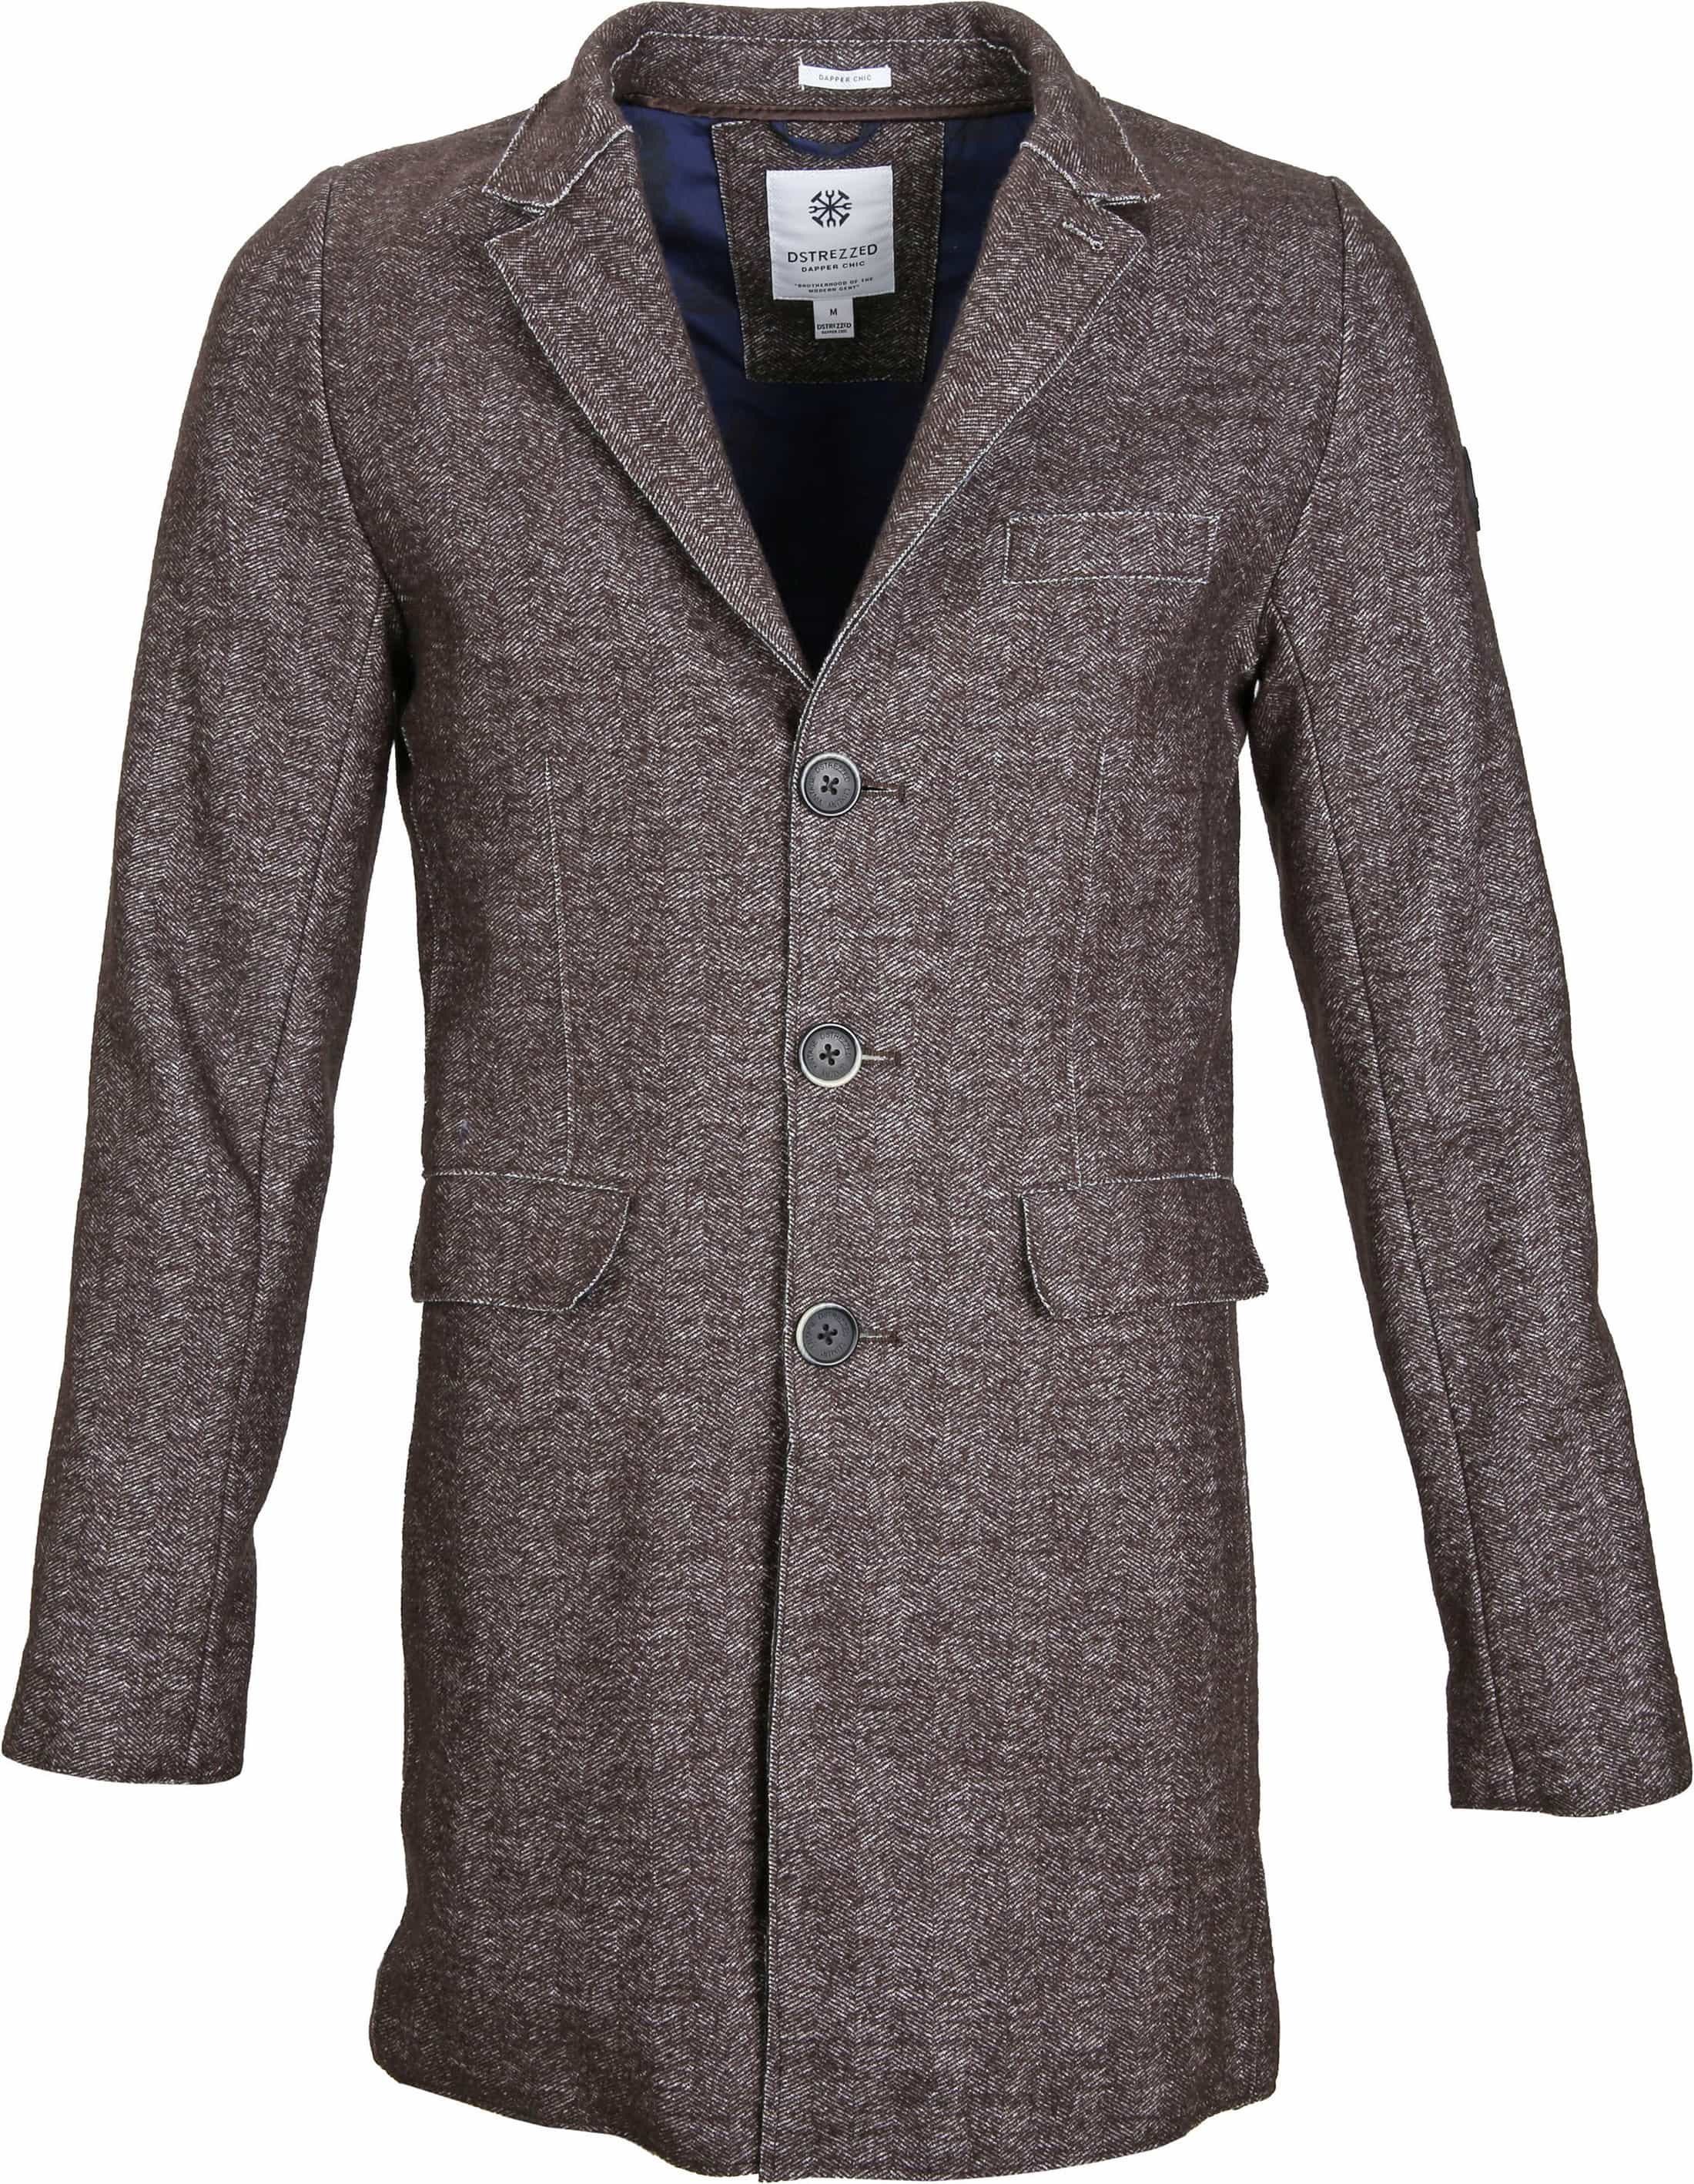 Dstrezzed Coat Boucle Brown Melange foto 0